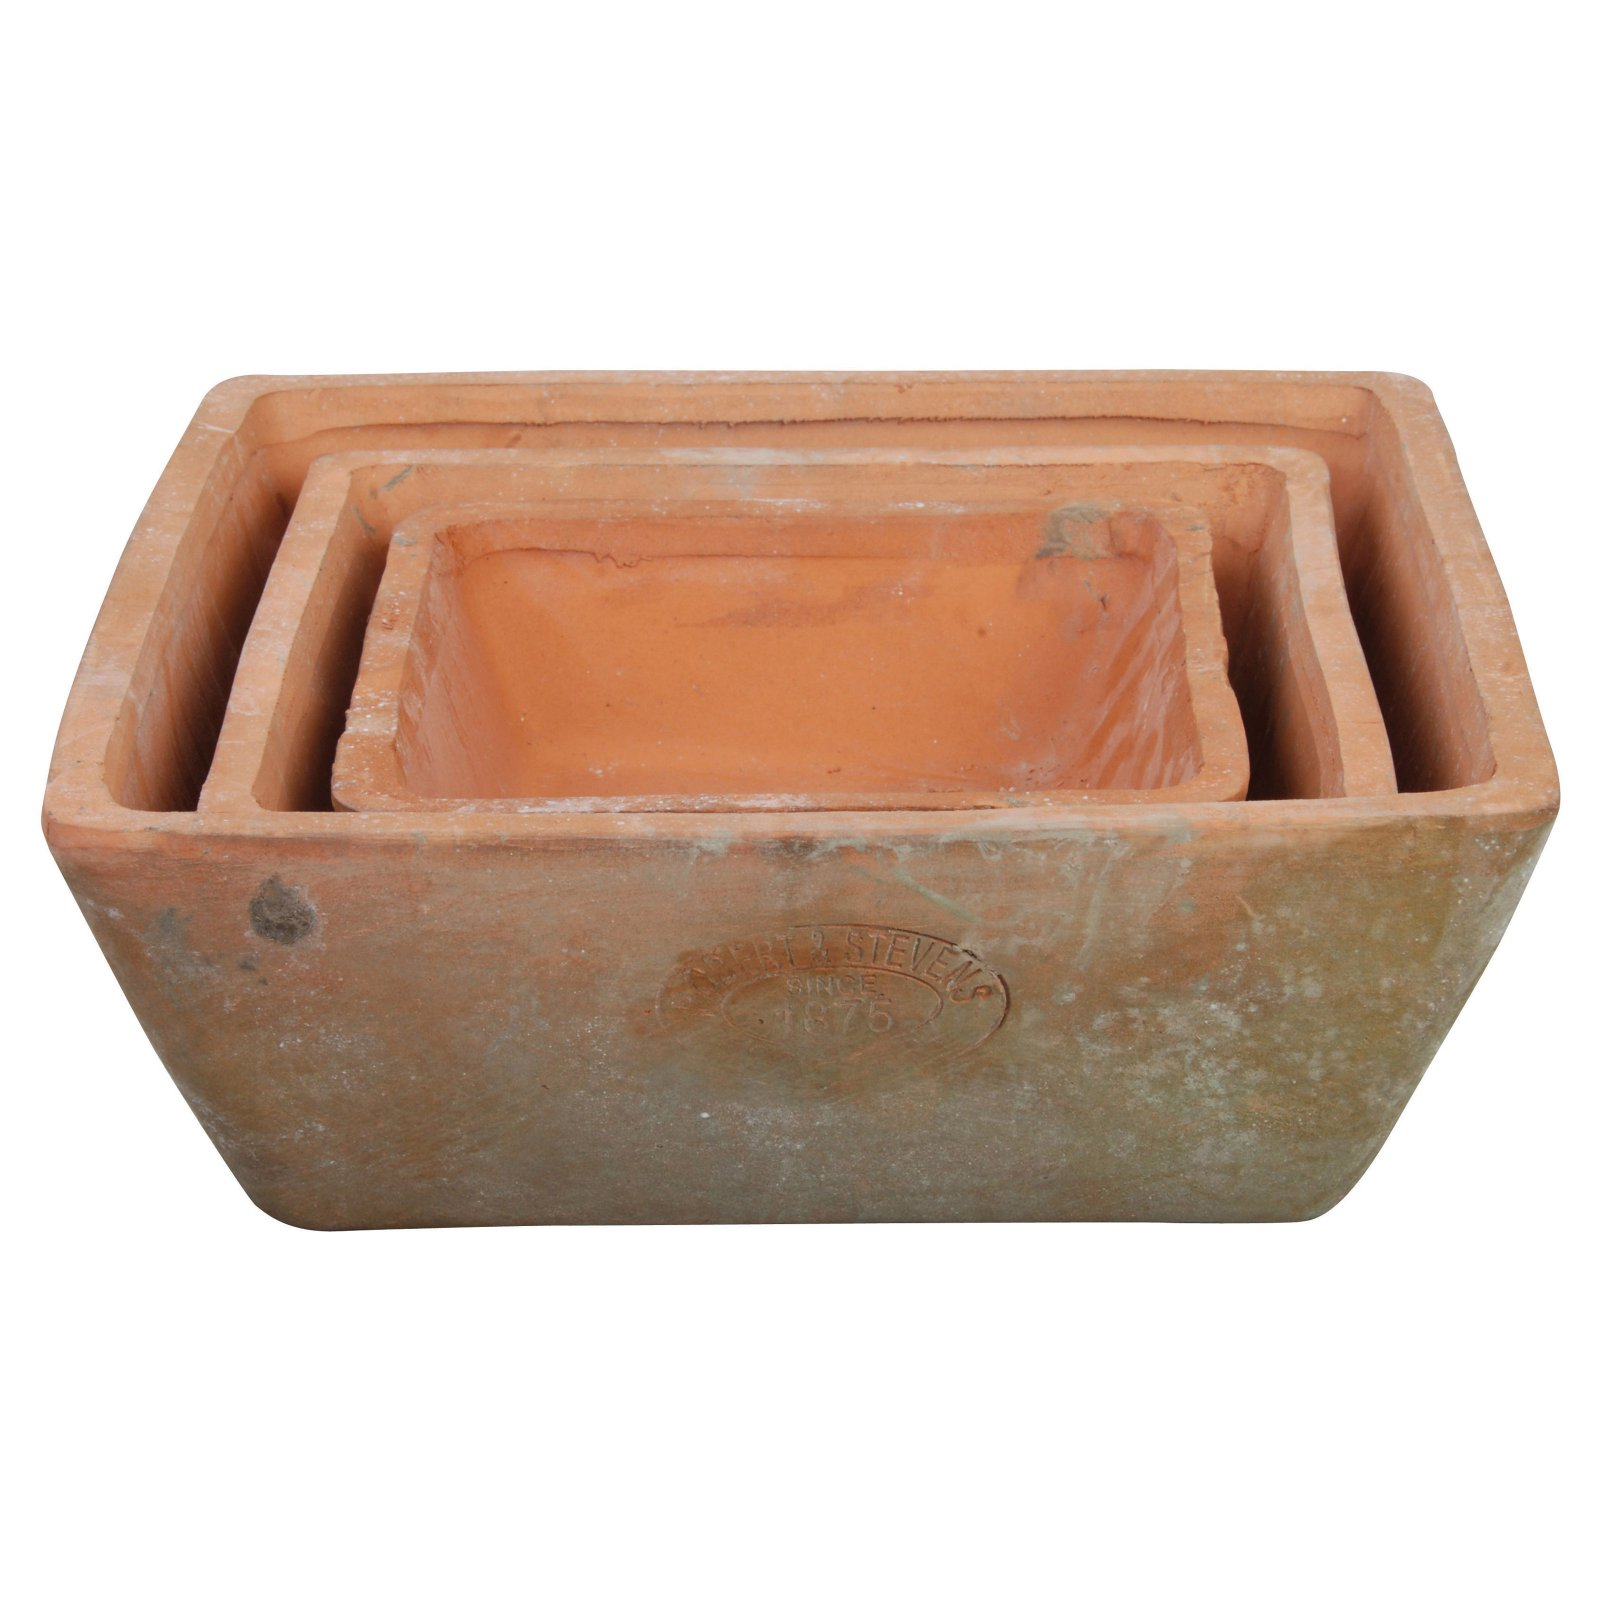 Image of Esschert Design Aged Terracotta Square Pots - Set of 3